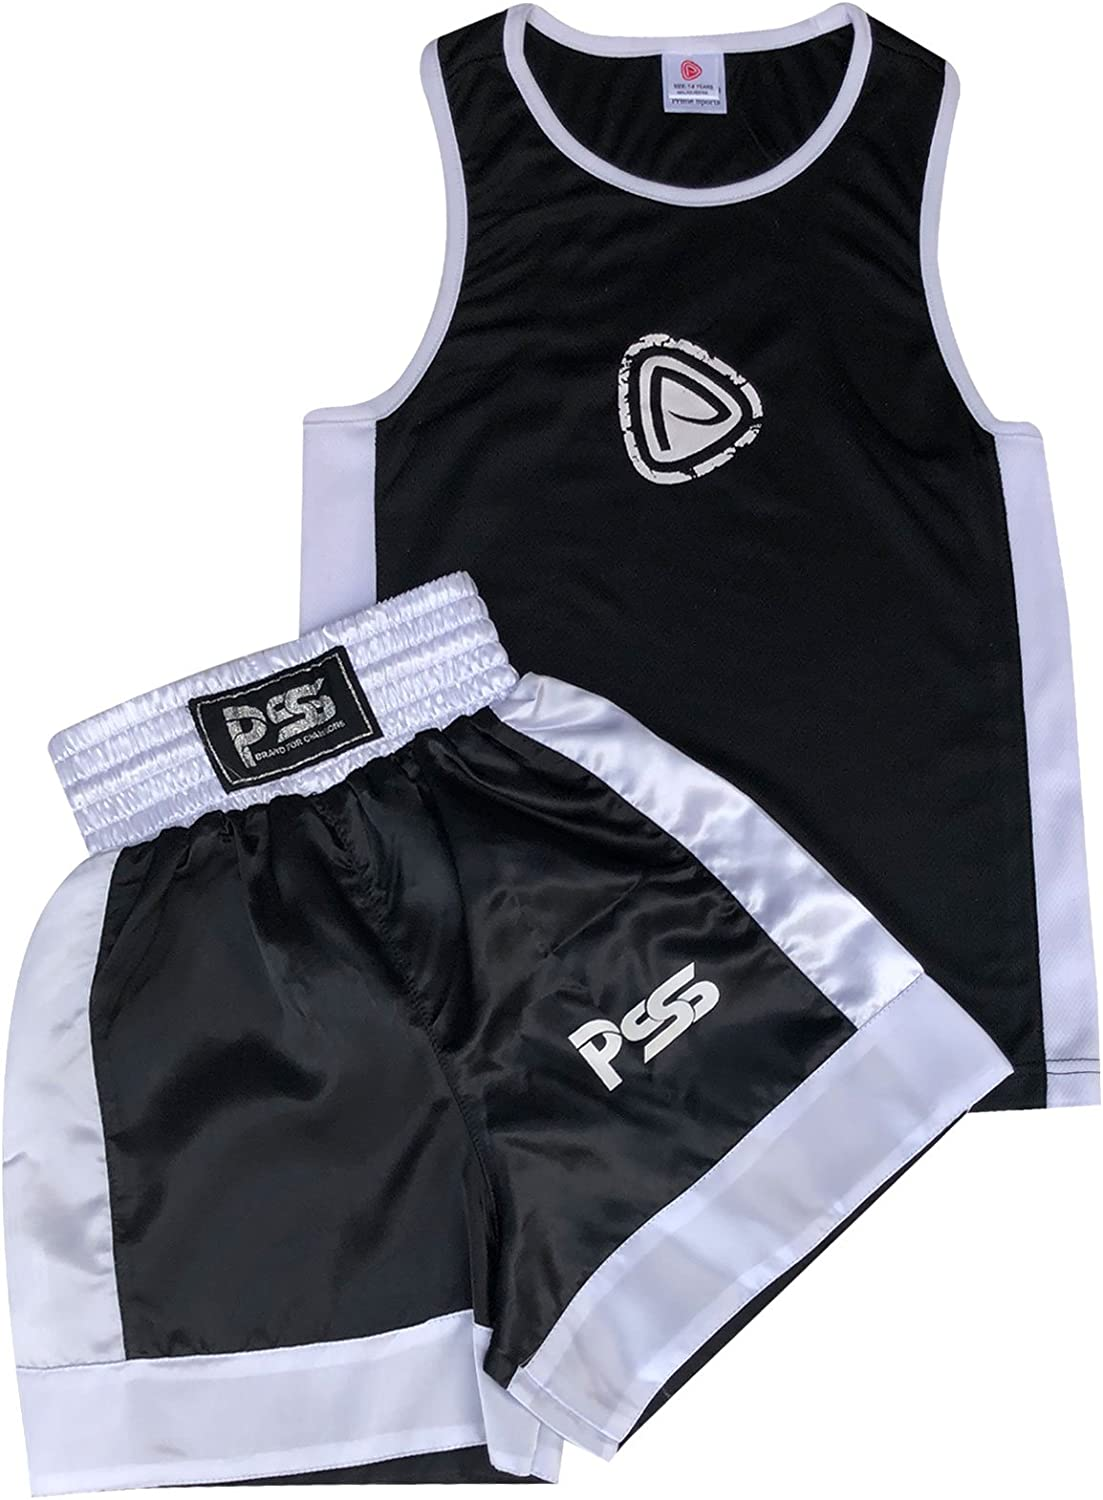 Kids Boxing Gloves 4-OZ 1005 Prime Sports Shop Ultimate Premium Quality Kids Boxing Uniform Comfortable and Lightweight 2 Pieces Set Top and Short Black-White